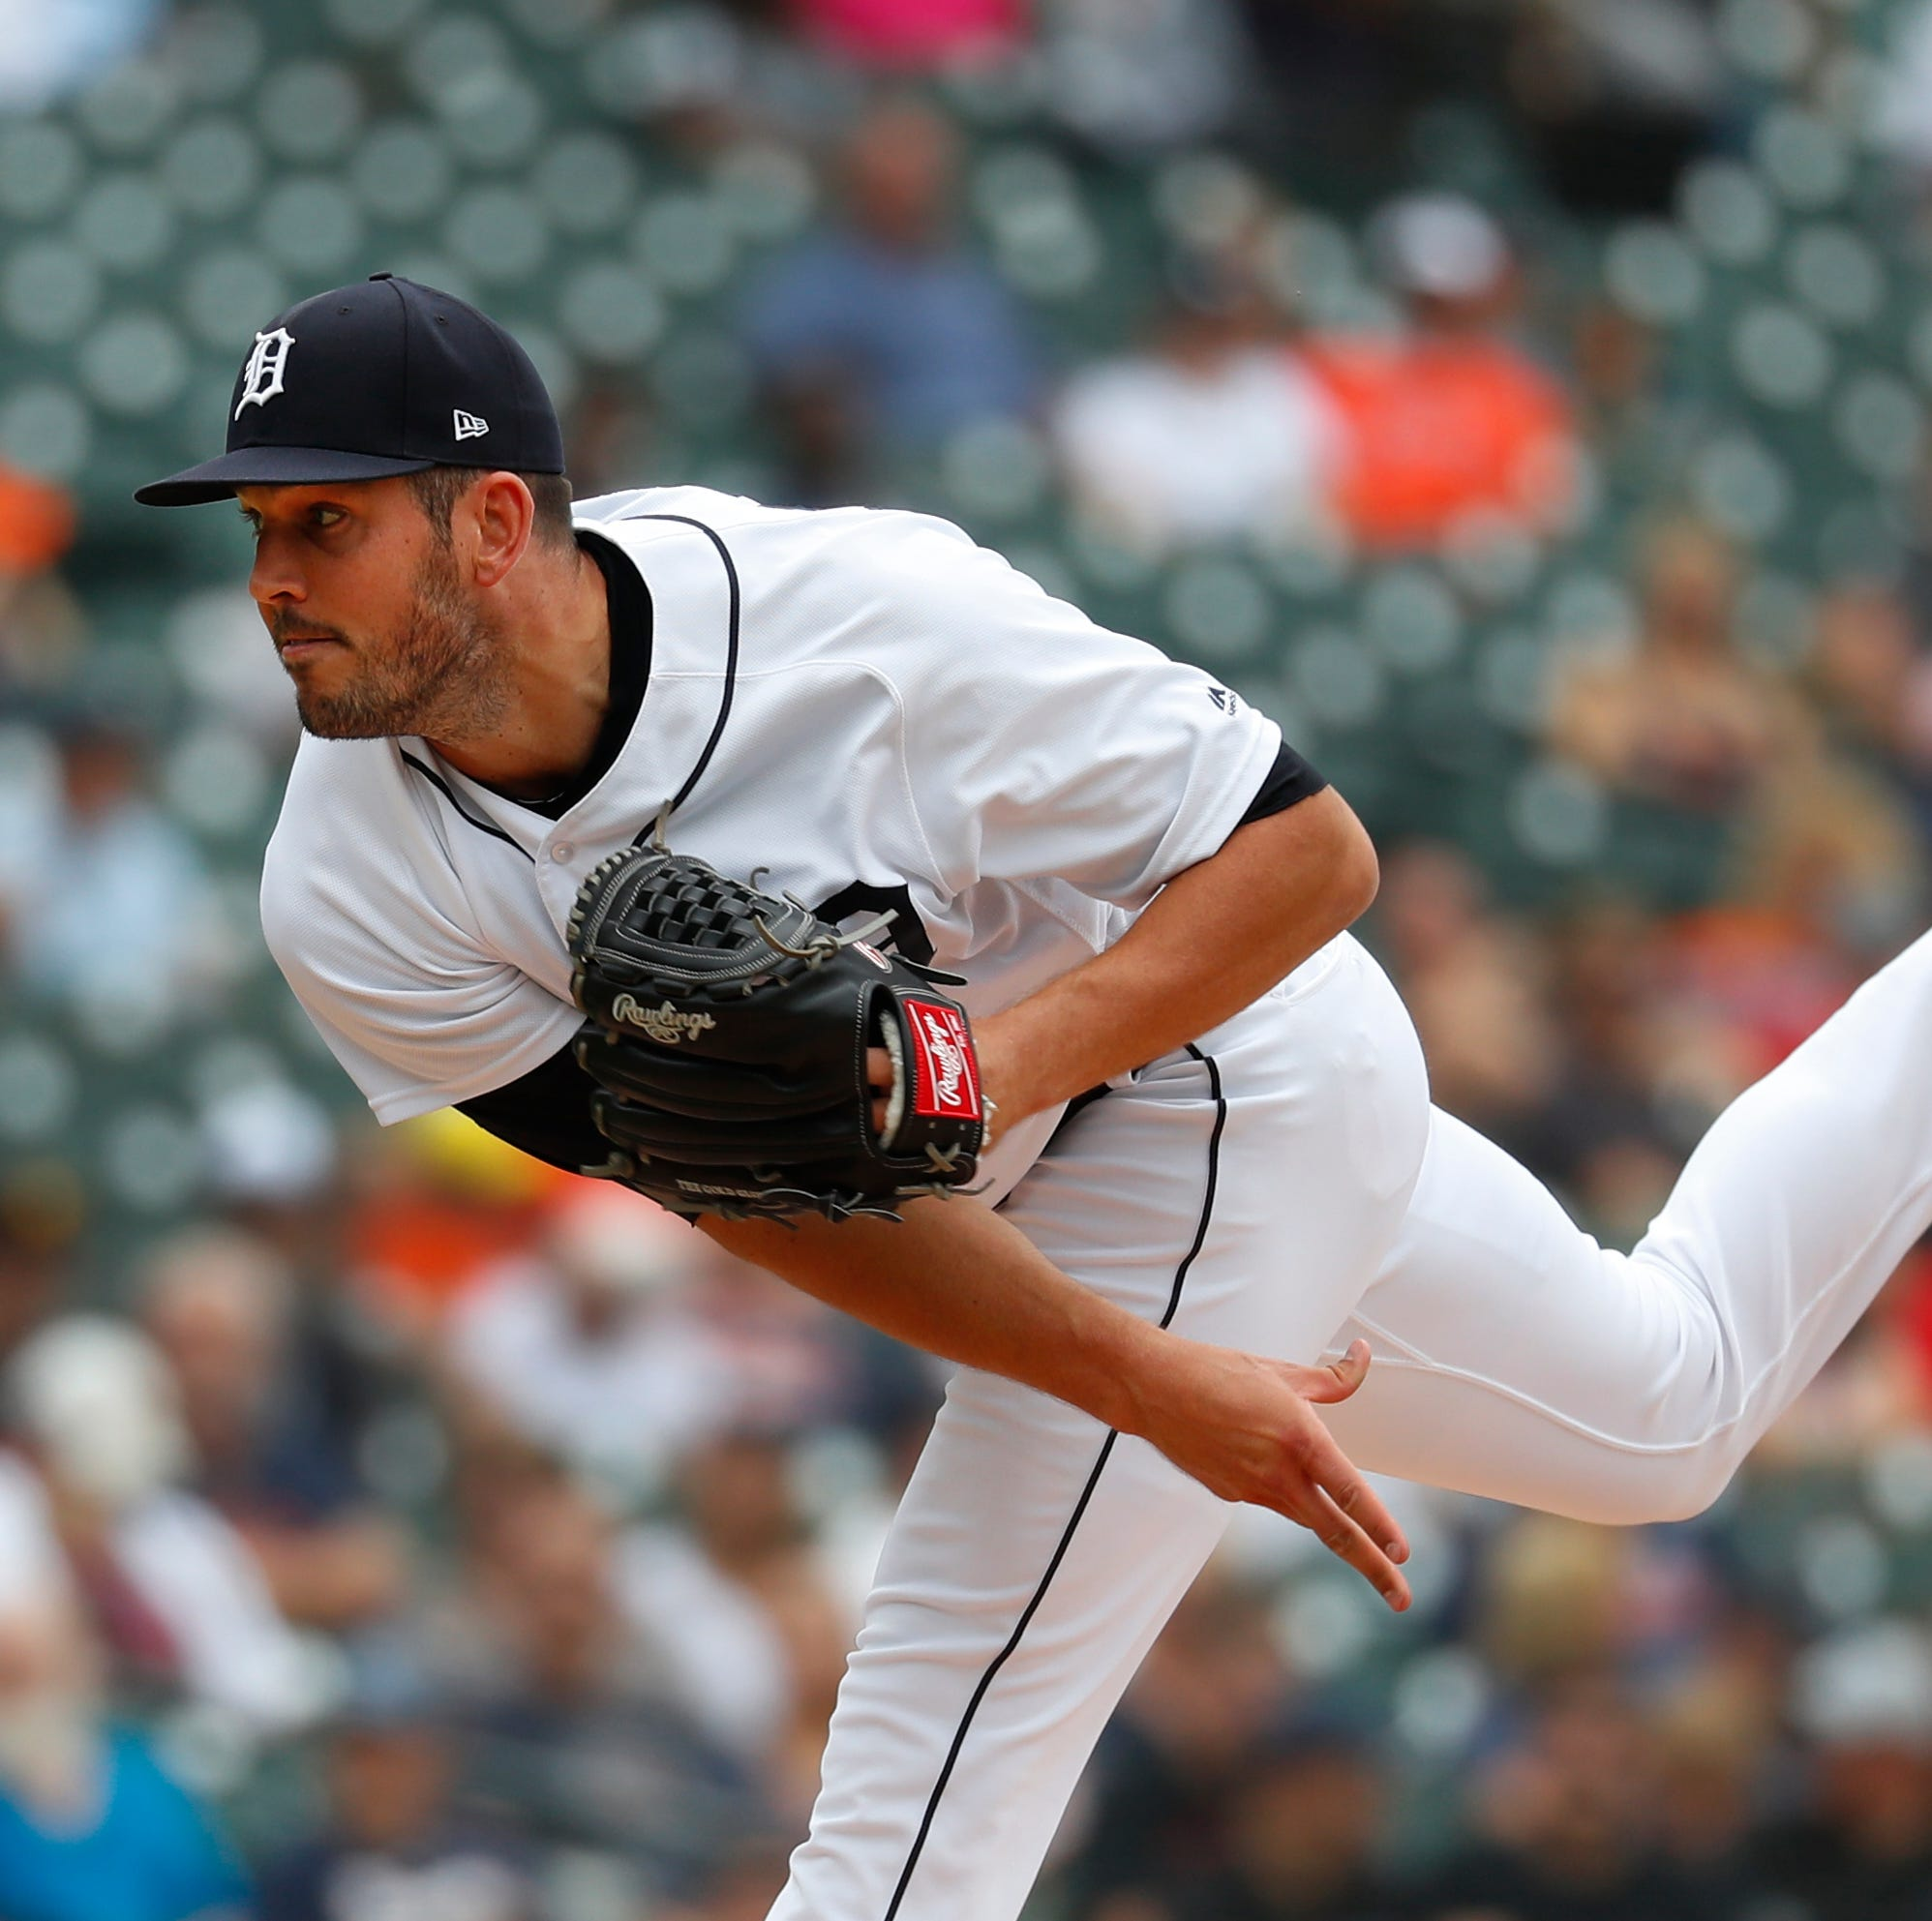 A man in control: Tigers' Drew VerHagen finally finds key to unlock vast potential